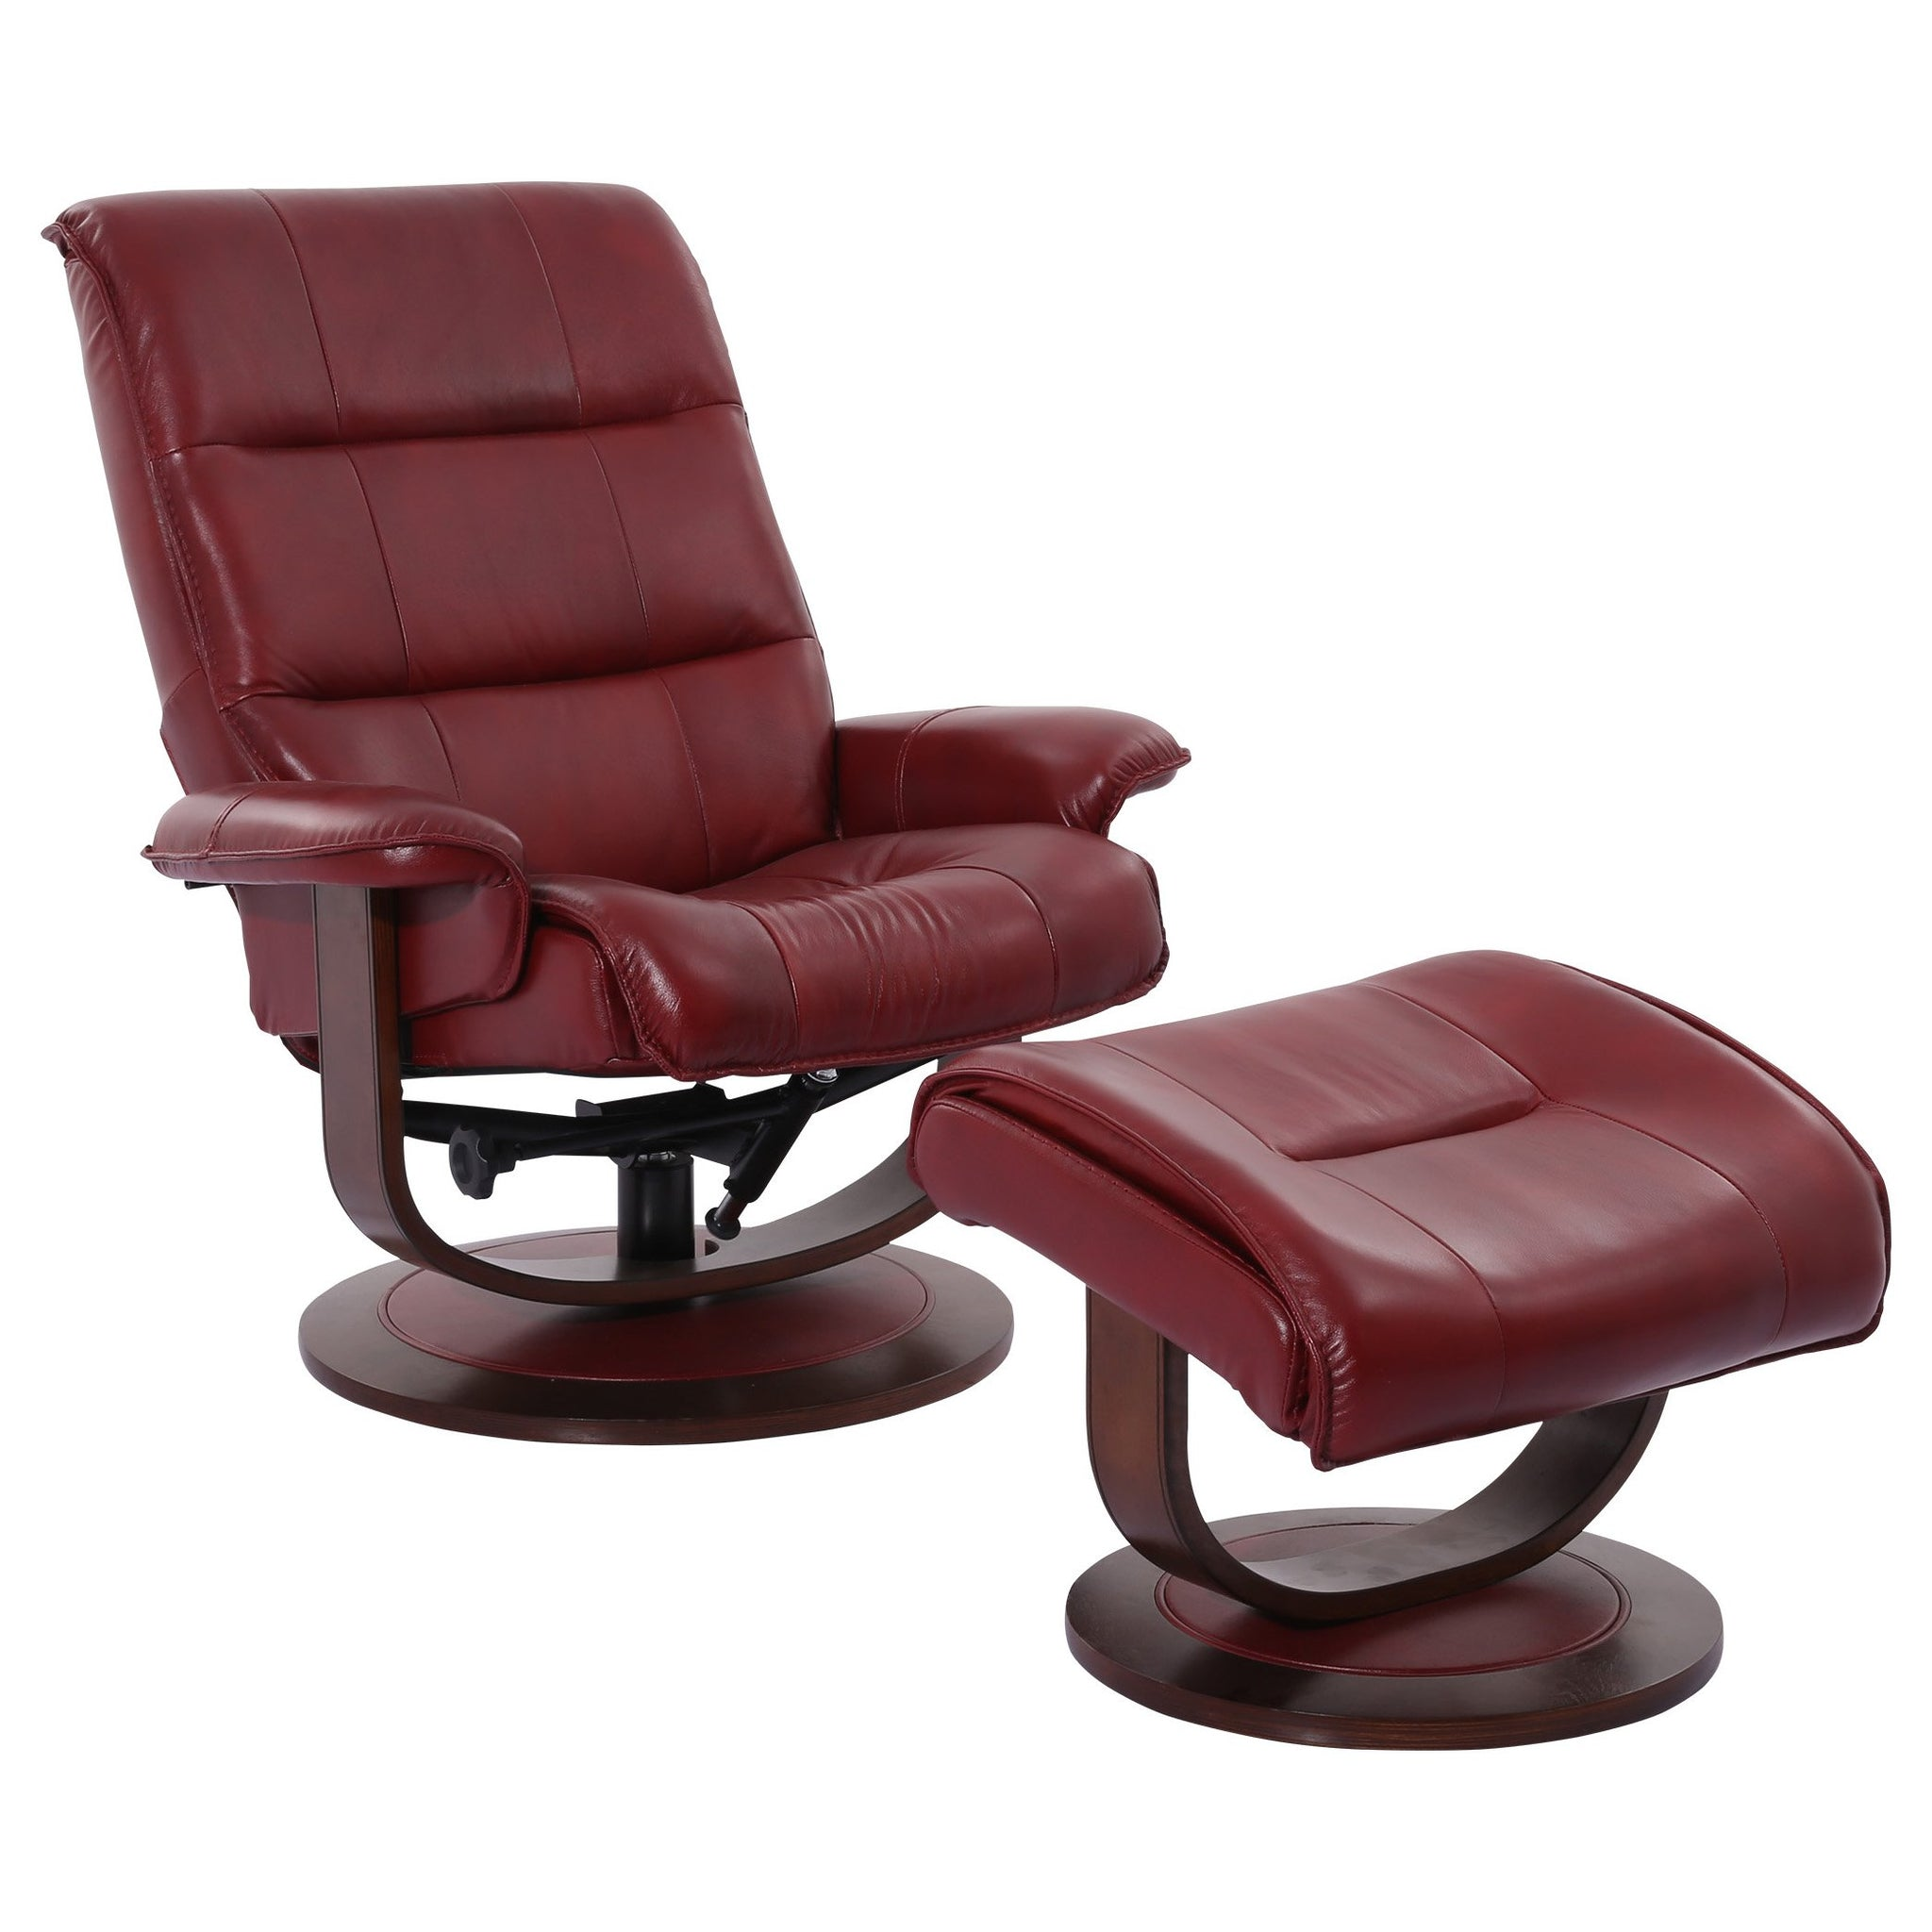 Strange Knight Rouge Manual Reclining Swivel Chair And Ottoman Pabps2019 Chair Design Images Pabps2019Com